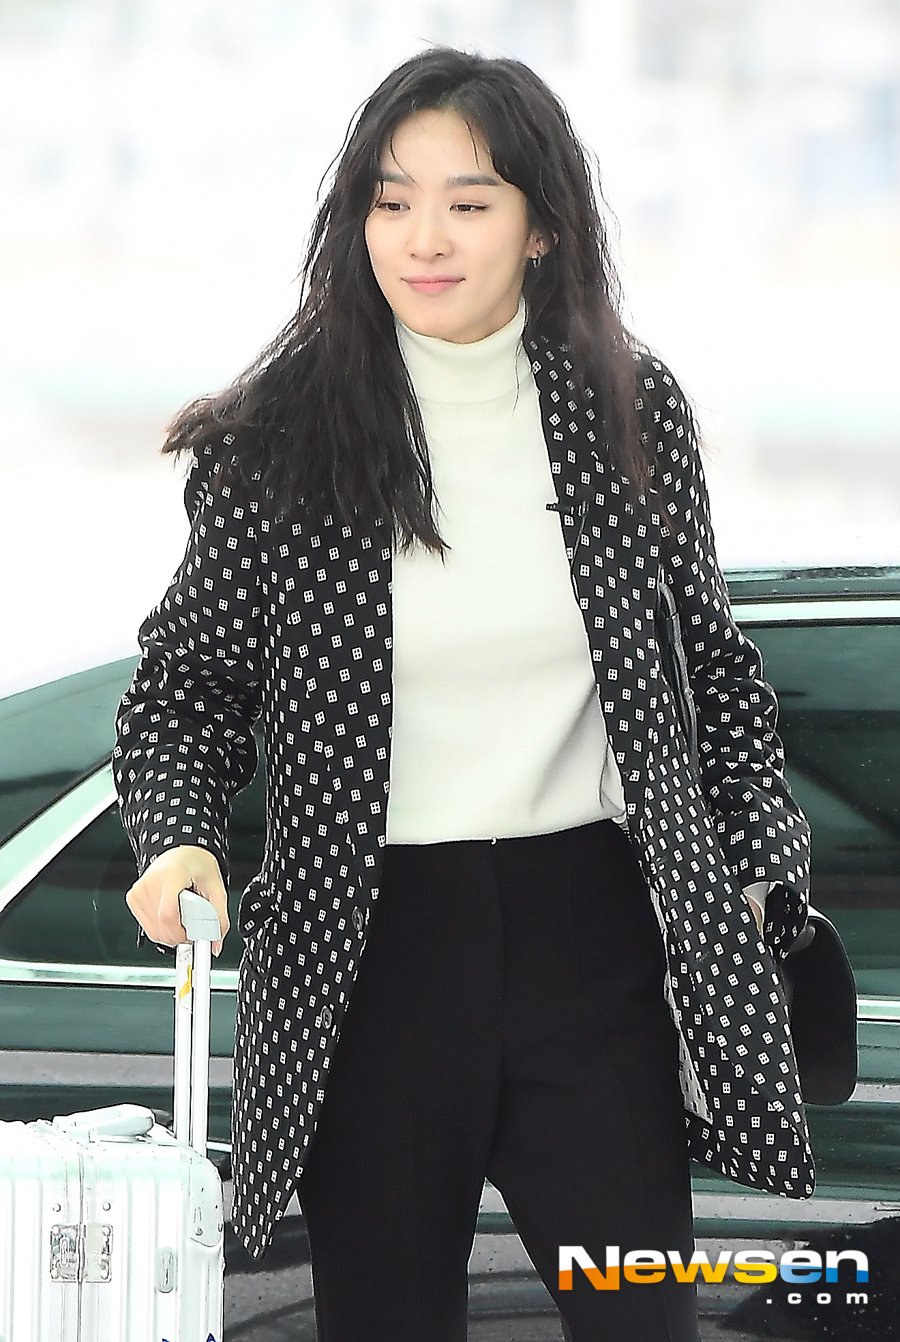 <p>Actress Lee Chung-ah going overseas schedule tea 12 13 am Incheon International Airport through Airport fashion, and Taiwan into the United States.</p><p>This day, Lee Chung-ah and the departure heading.</p>